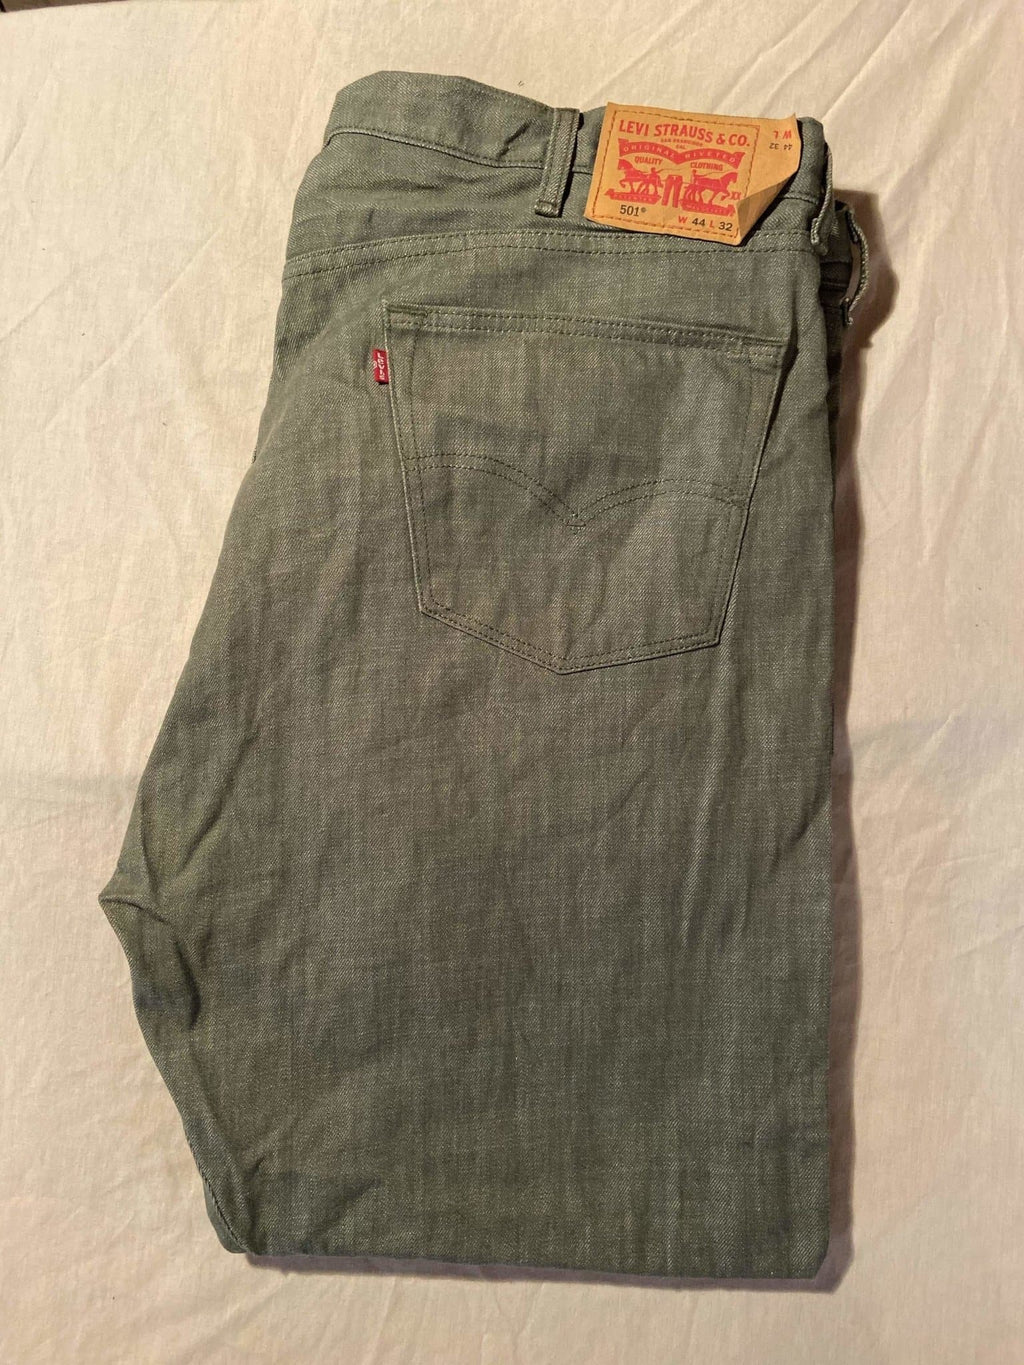 As New Condition Levi's Original 501 Regular Fit Jeans W44 L32 (LJ5) - Discounted Deals UK